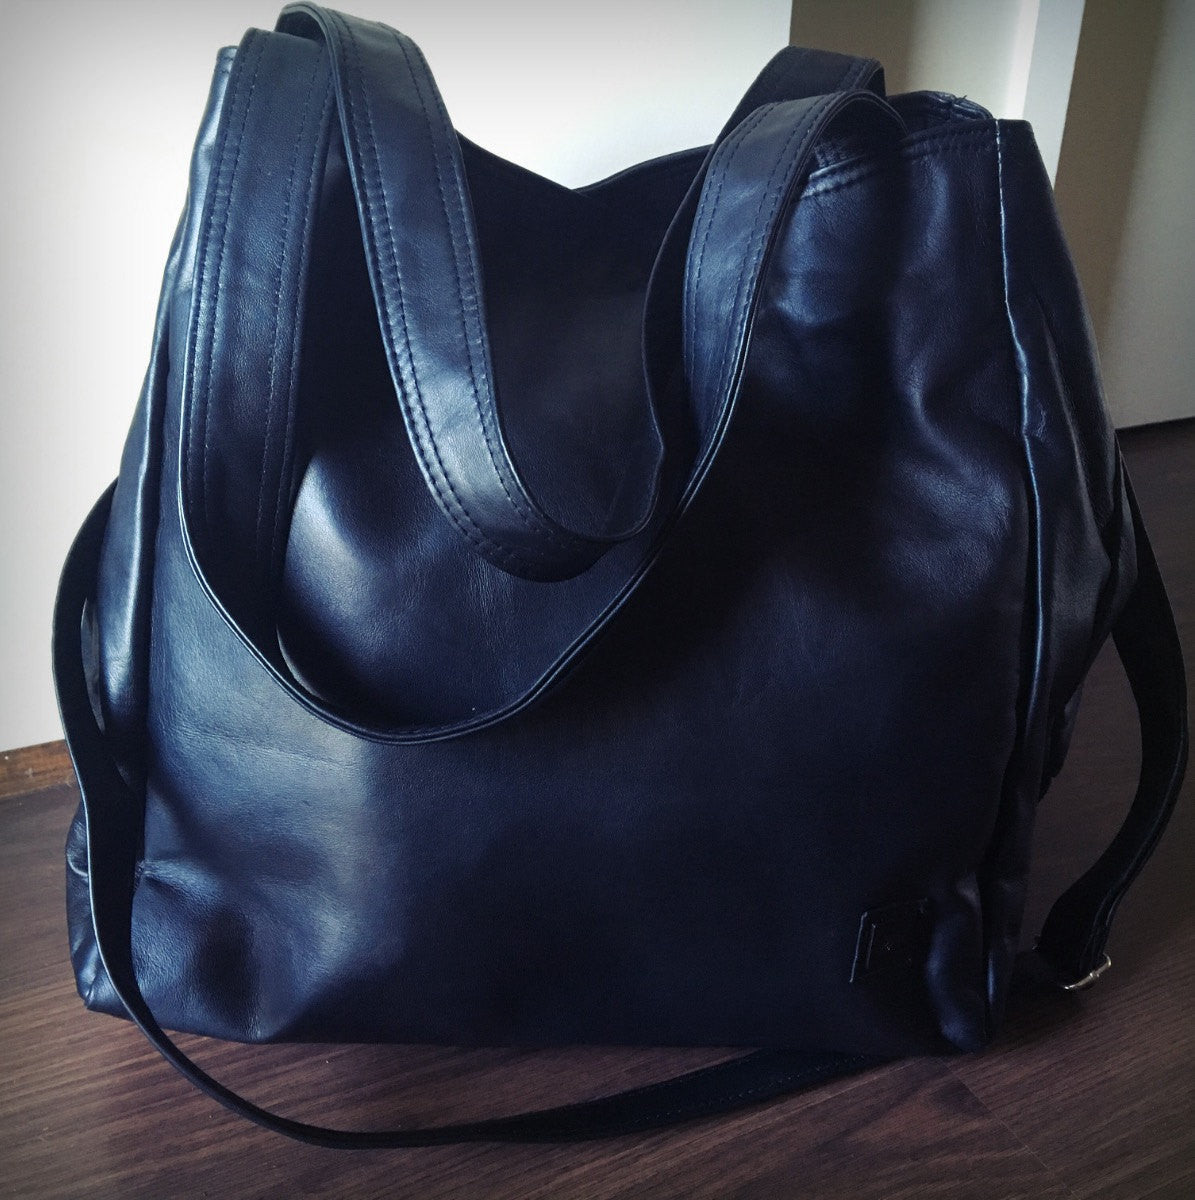 The Gigi - Extra-large handmade genuine leather square shaped tote bag